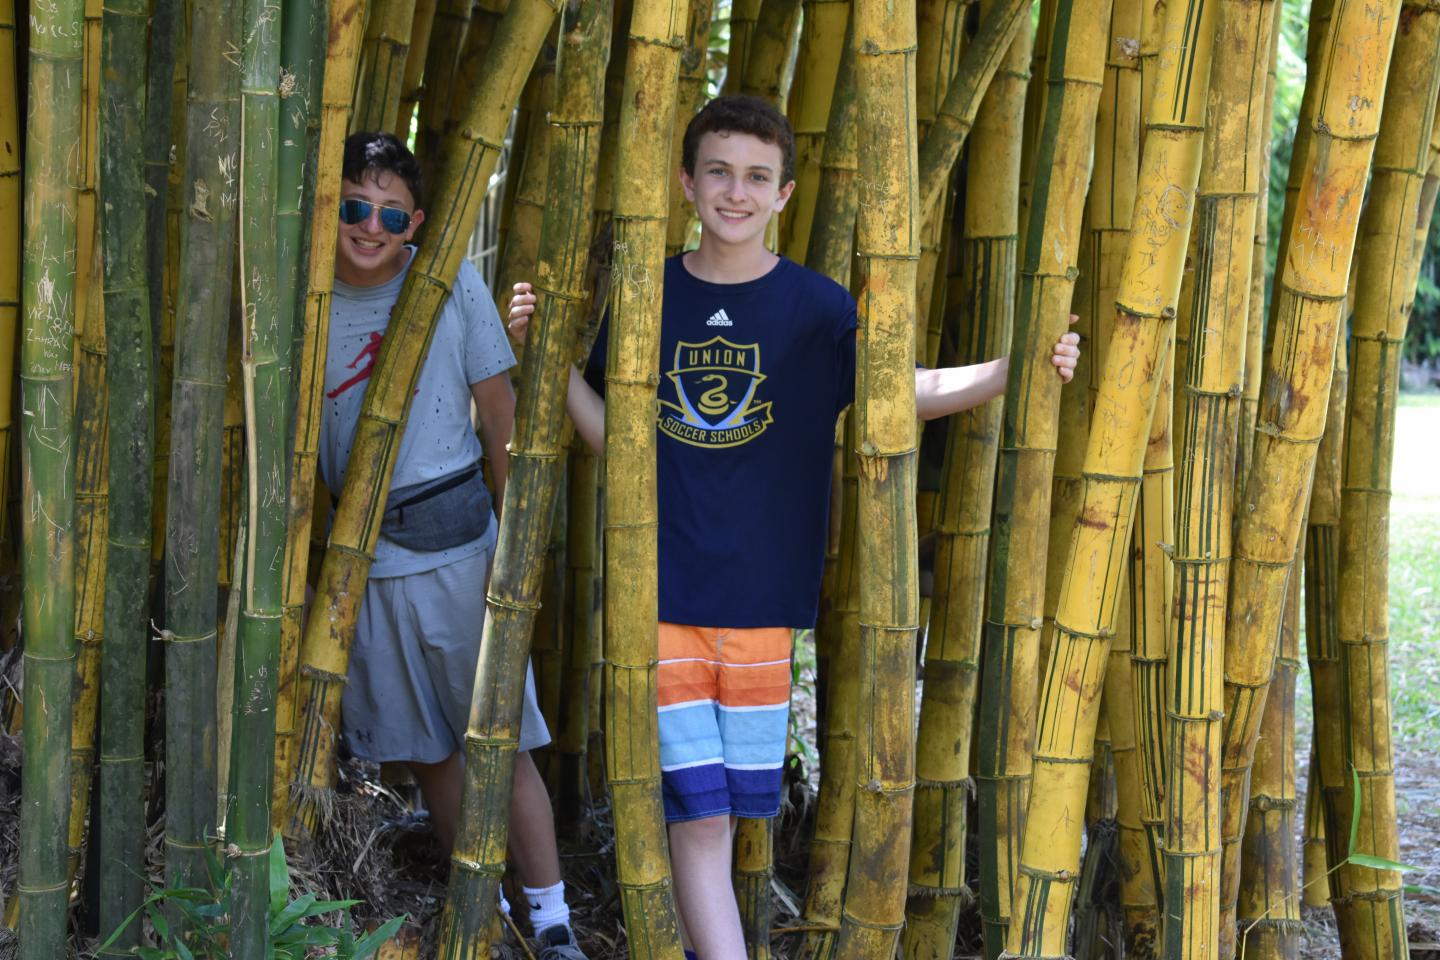 Teenage boys post in a bamboo forest on their student tour of Hawaii.